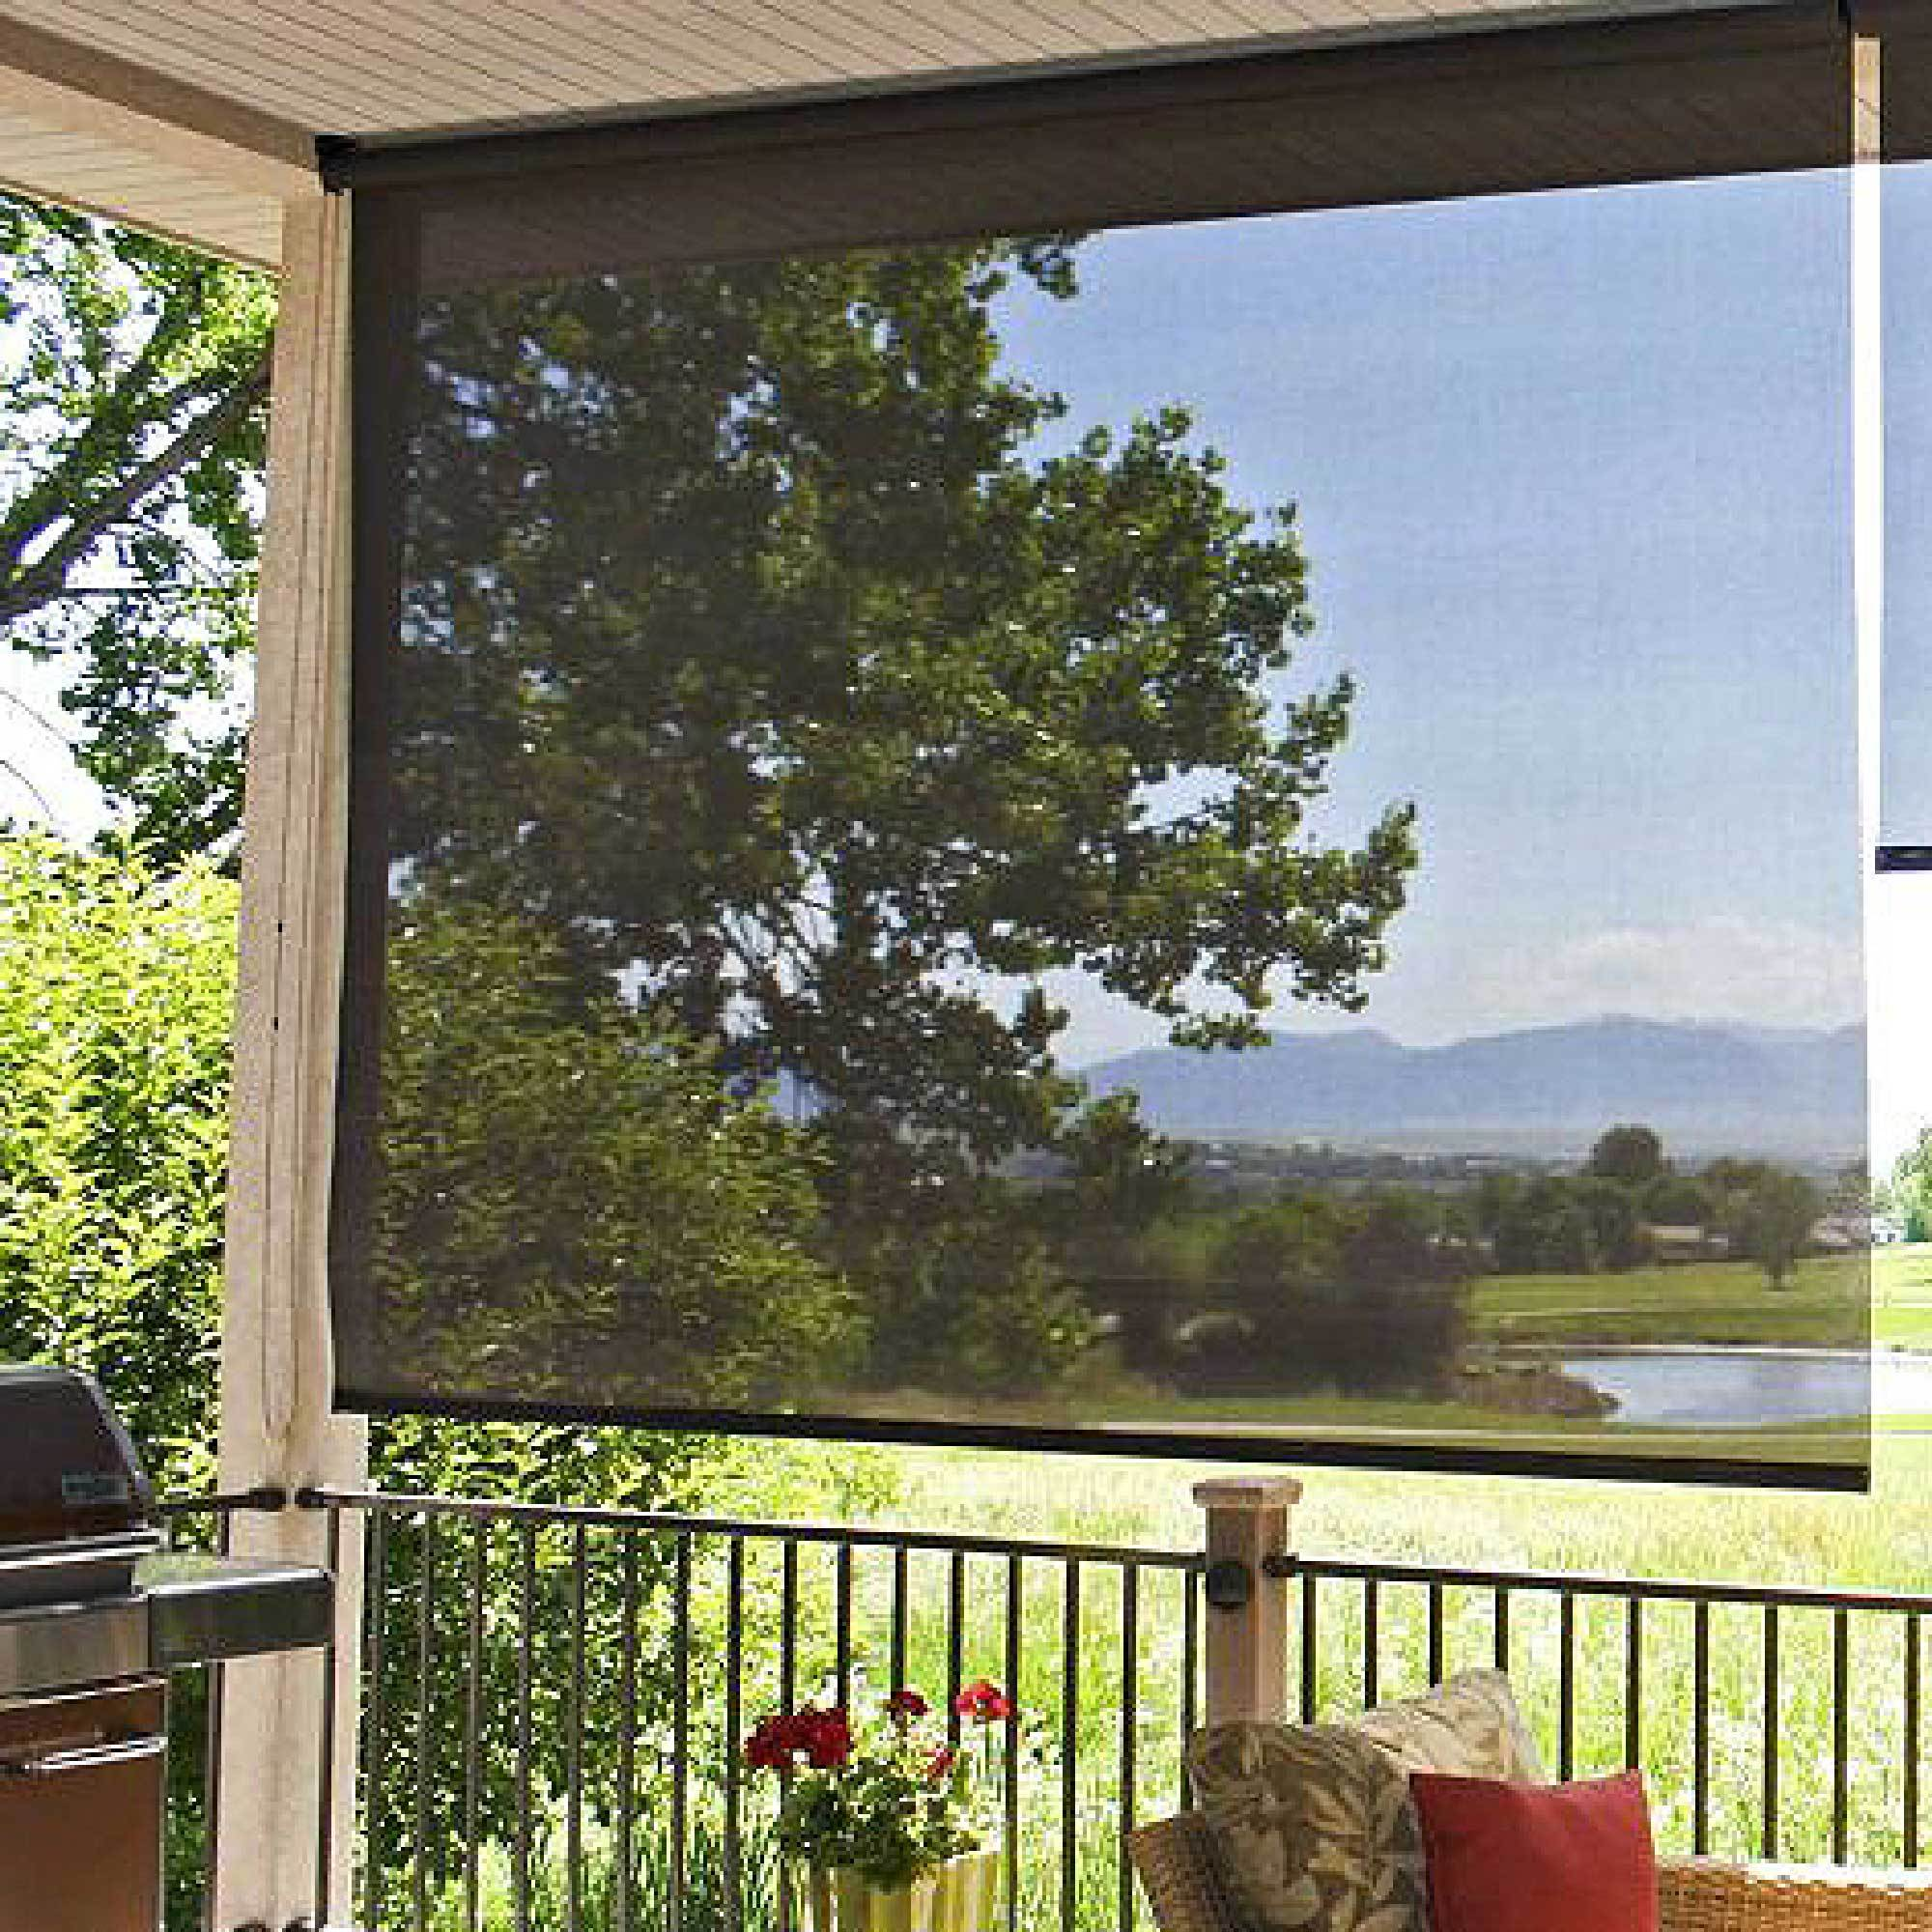 dalix outdoor roller shade exterior roll up sun shade patio outdoor ready made 72 x 72 in black